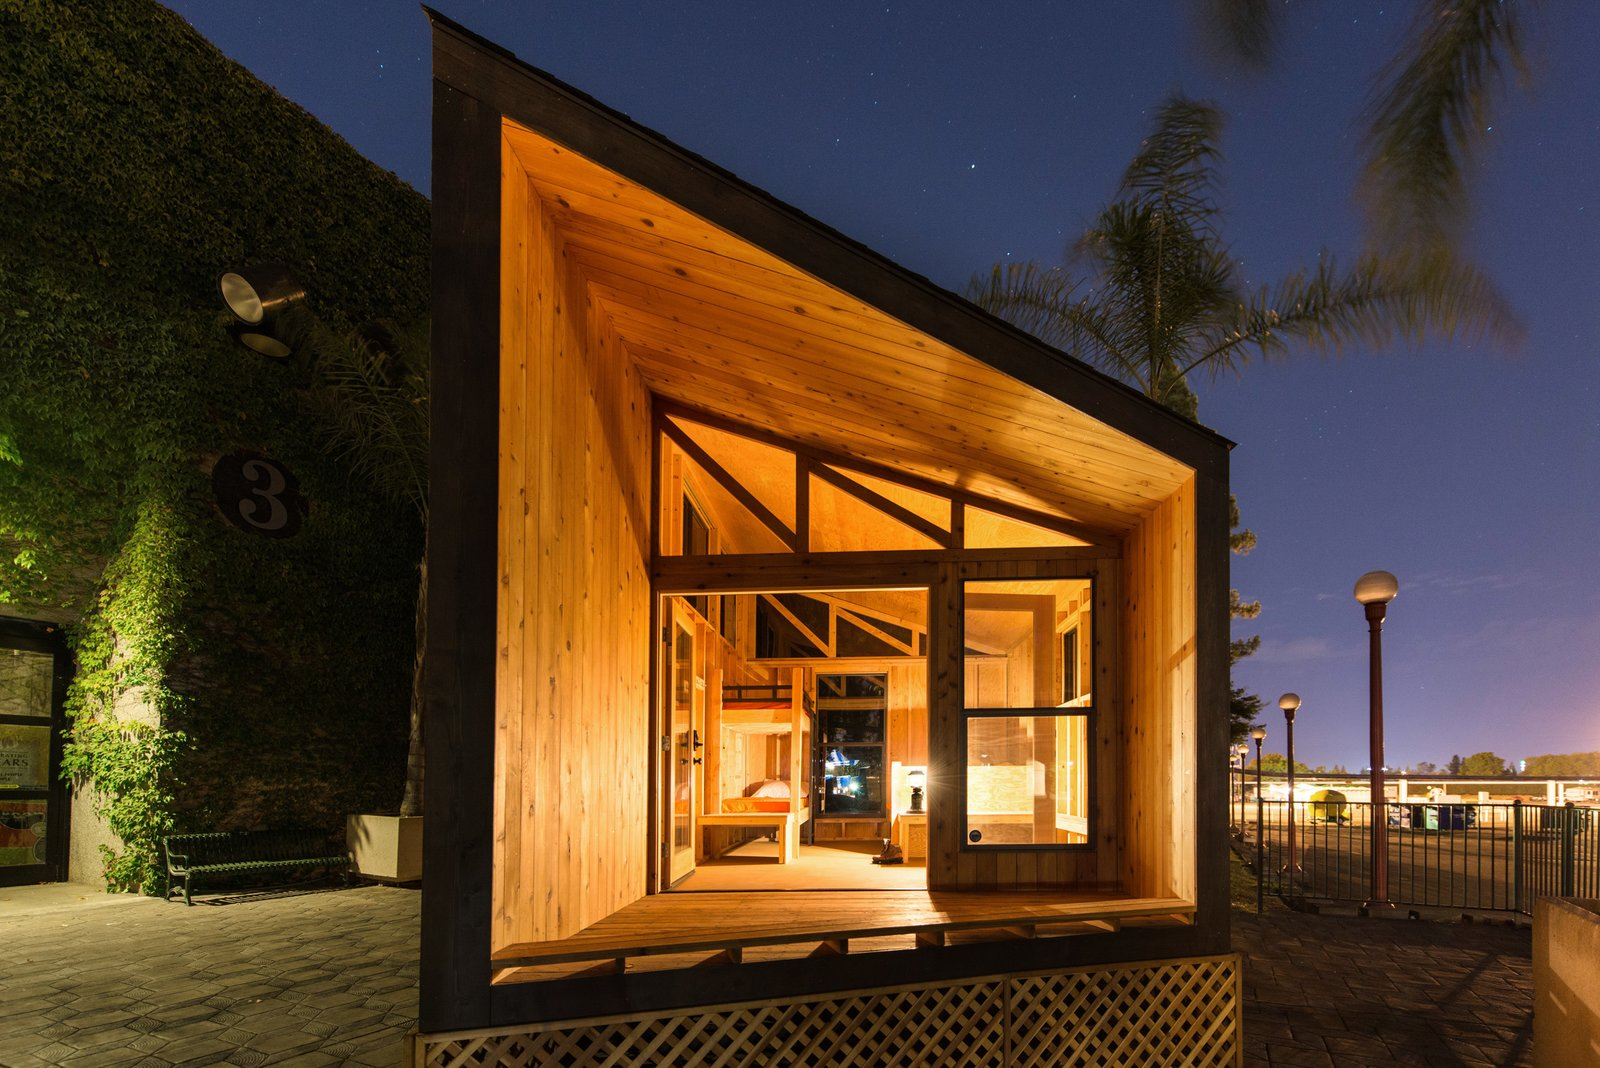 When they are eventually integrated into the parks, the cabins are meant to stand in groups of ten to 15.  Prefab by Laurie Vanderboom from Modern Prefab Cabins for California State Parks